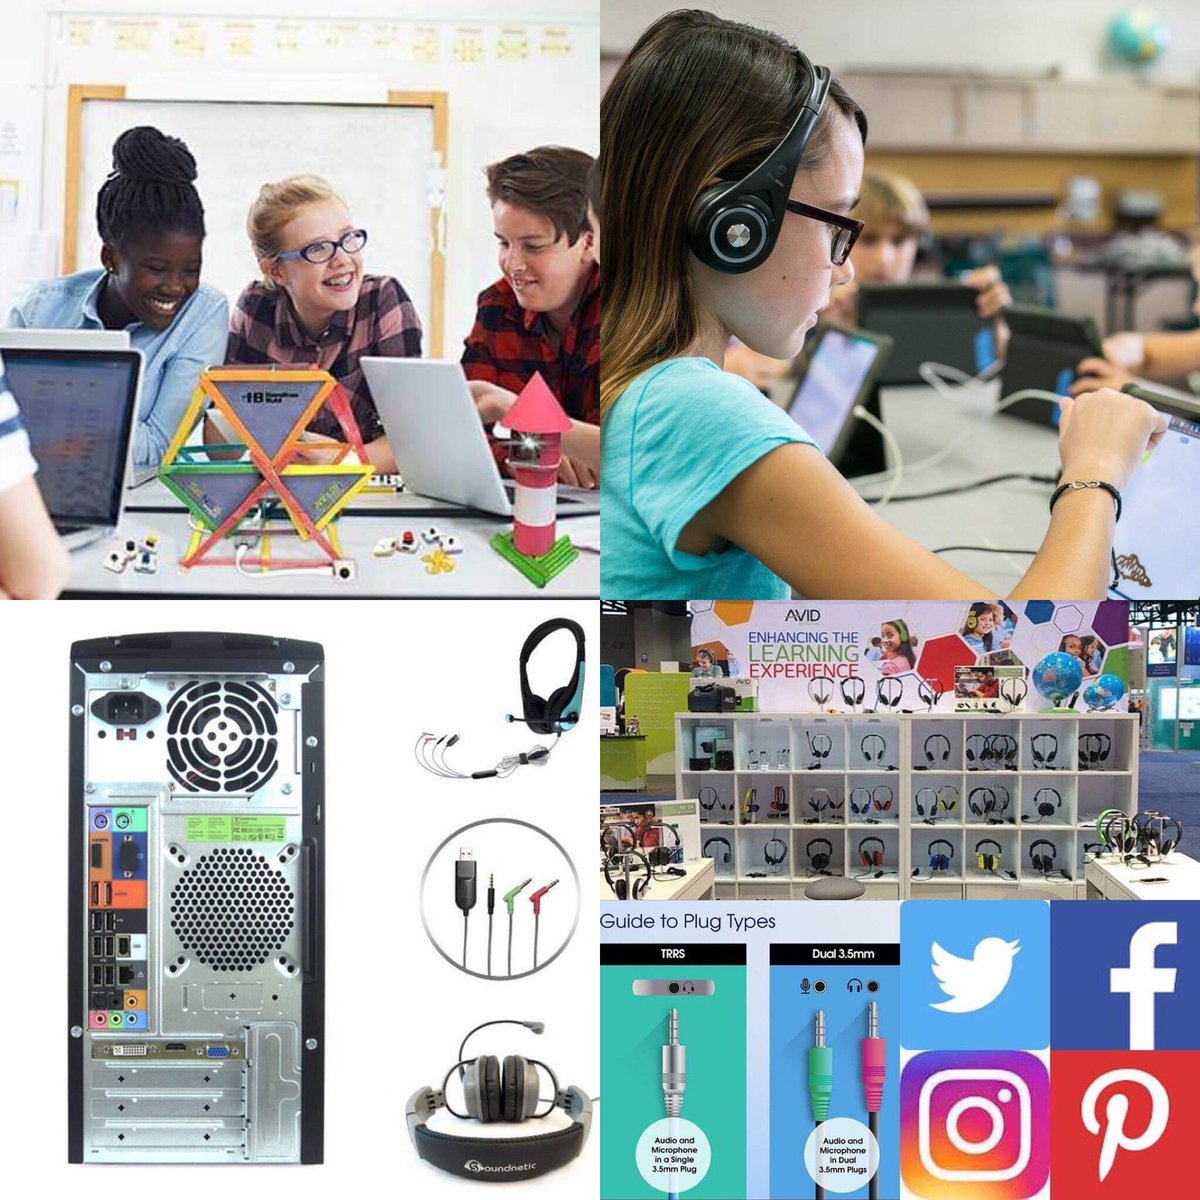 Committed to providing the best value and quality -education listening and learning technology!😎 Follow us on social media ,read our blog -stay updated!😀🎧💻 Call  866 926 1669 https://t.co/SF5LjUOjEy #schoolsupplies #schoolsupplyshopping #STEMDirector #curriculumdirector https://t.co/Ou0NXWNSFQ